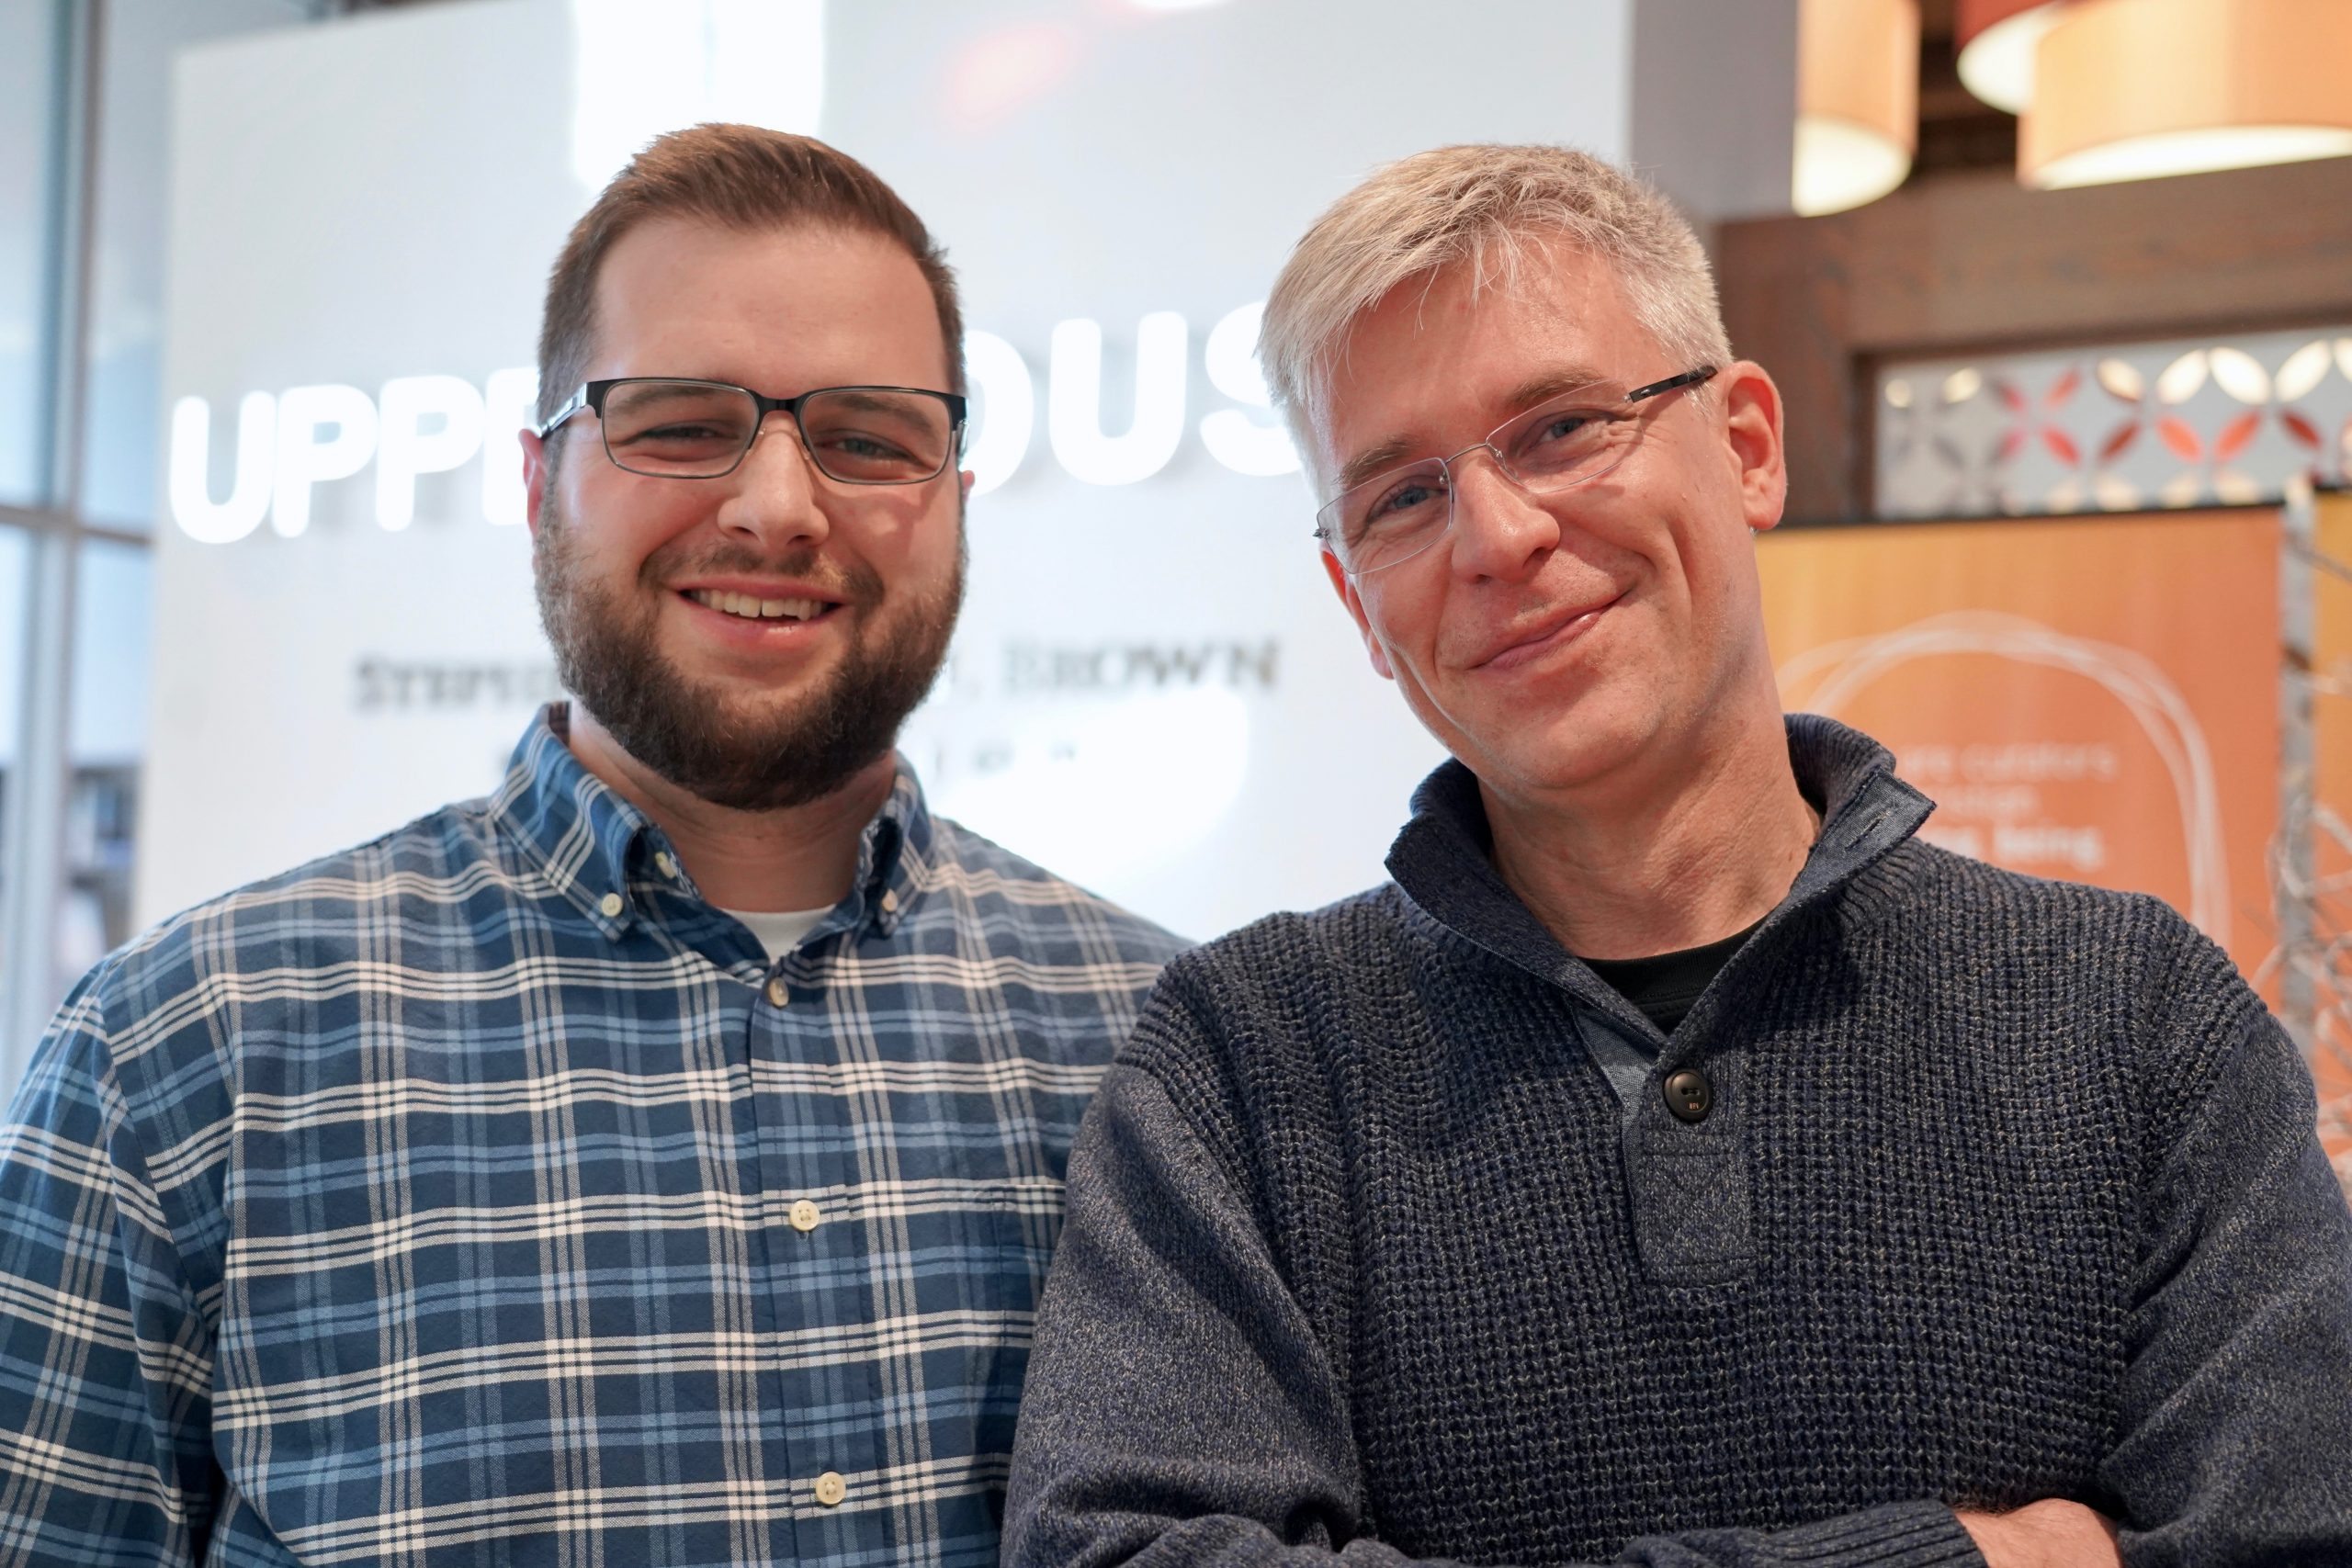 Drs. Dan Hummel and Eric Carlsson are creating a new, cutting-edge Fellows program at Upper House to launch in 2020.